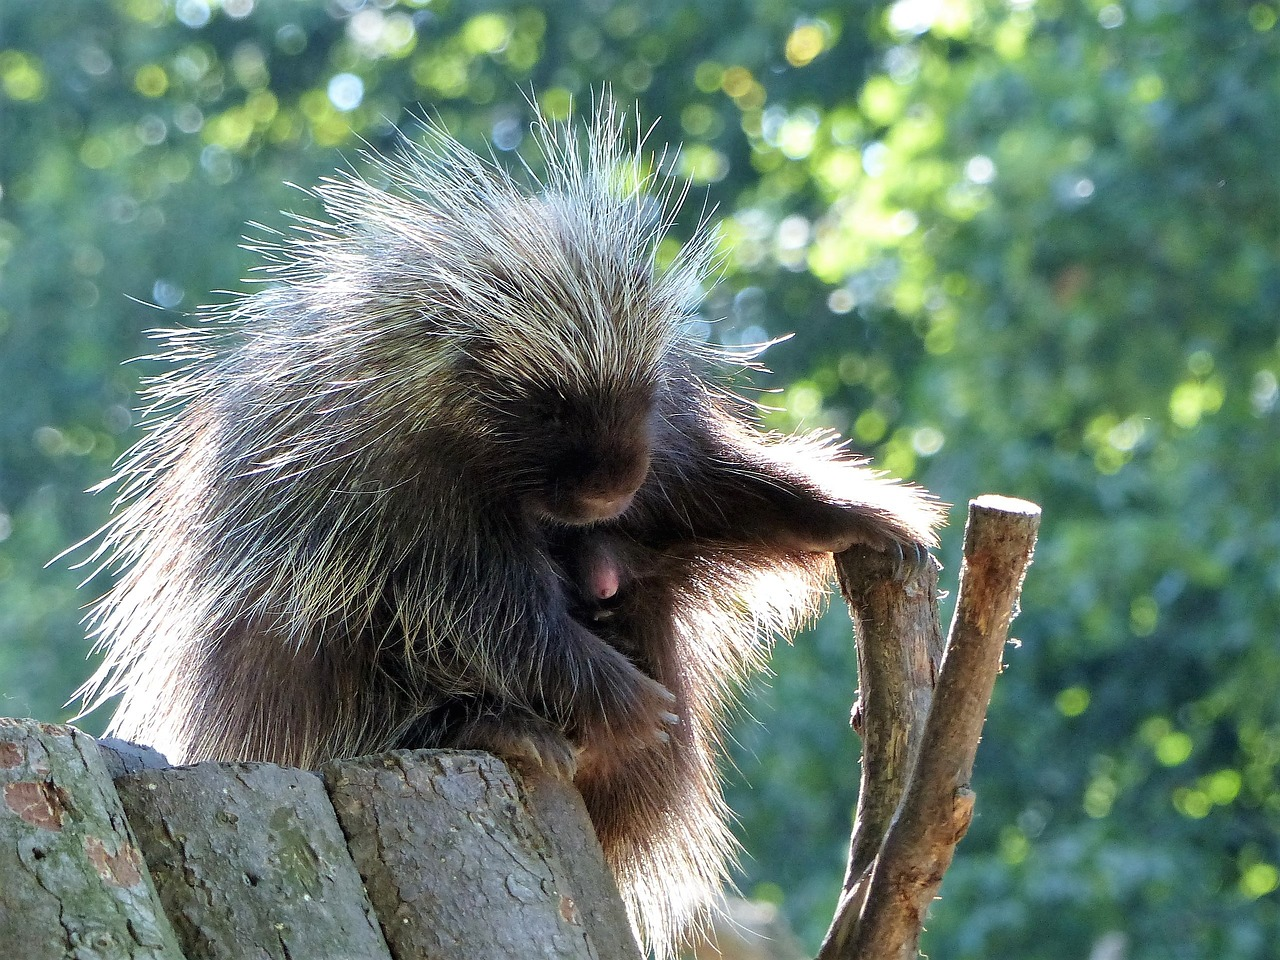 Image: Porcupine sitting on a log